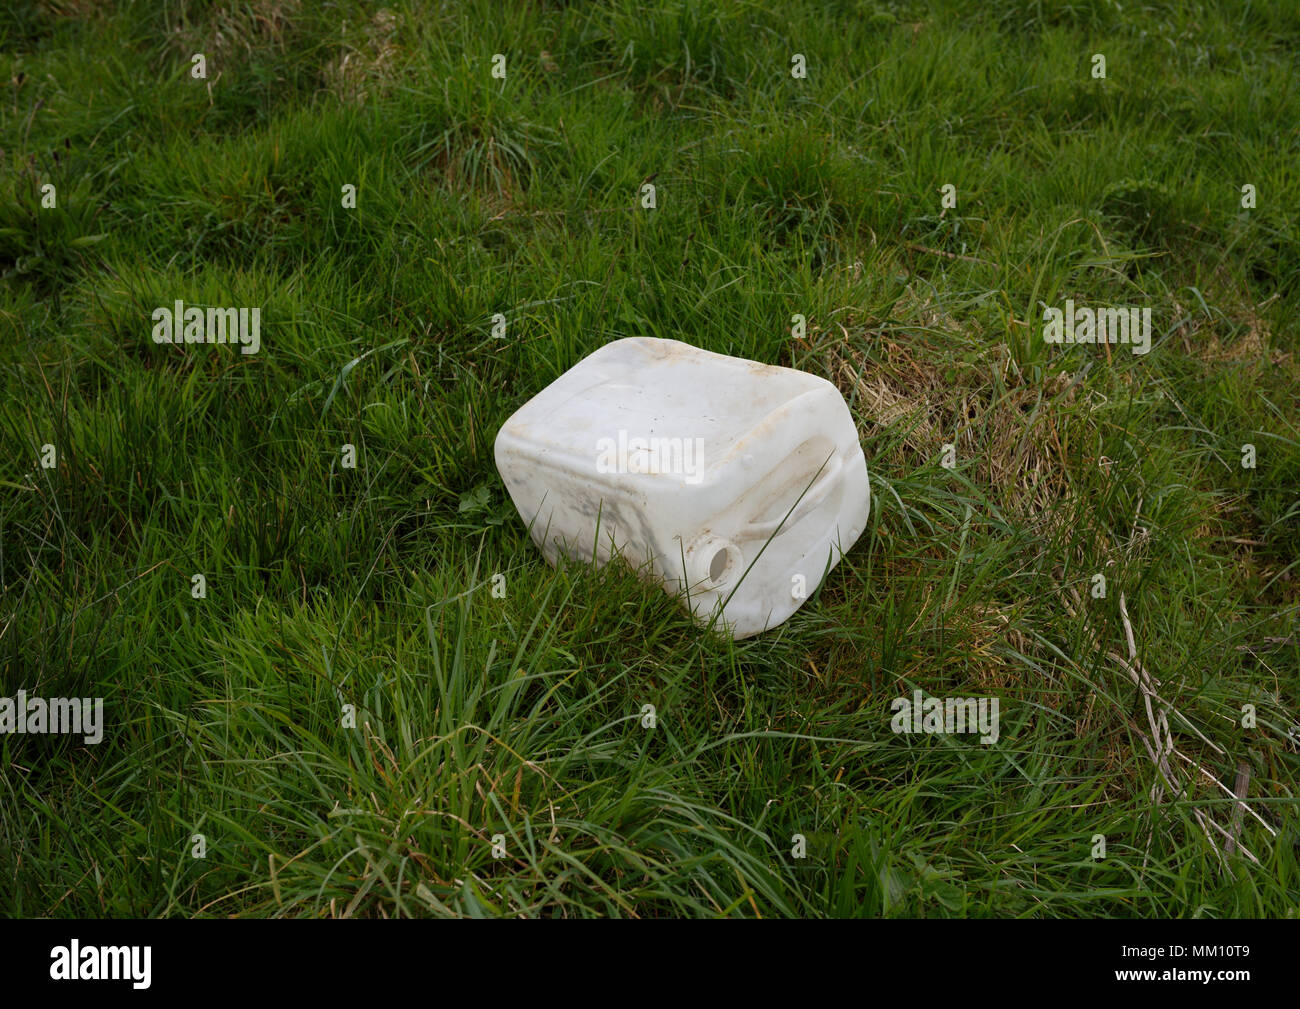 Plastic container thrown away on coastal footpath in north wales uk - Stock Image